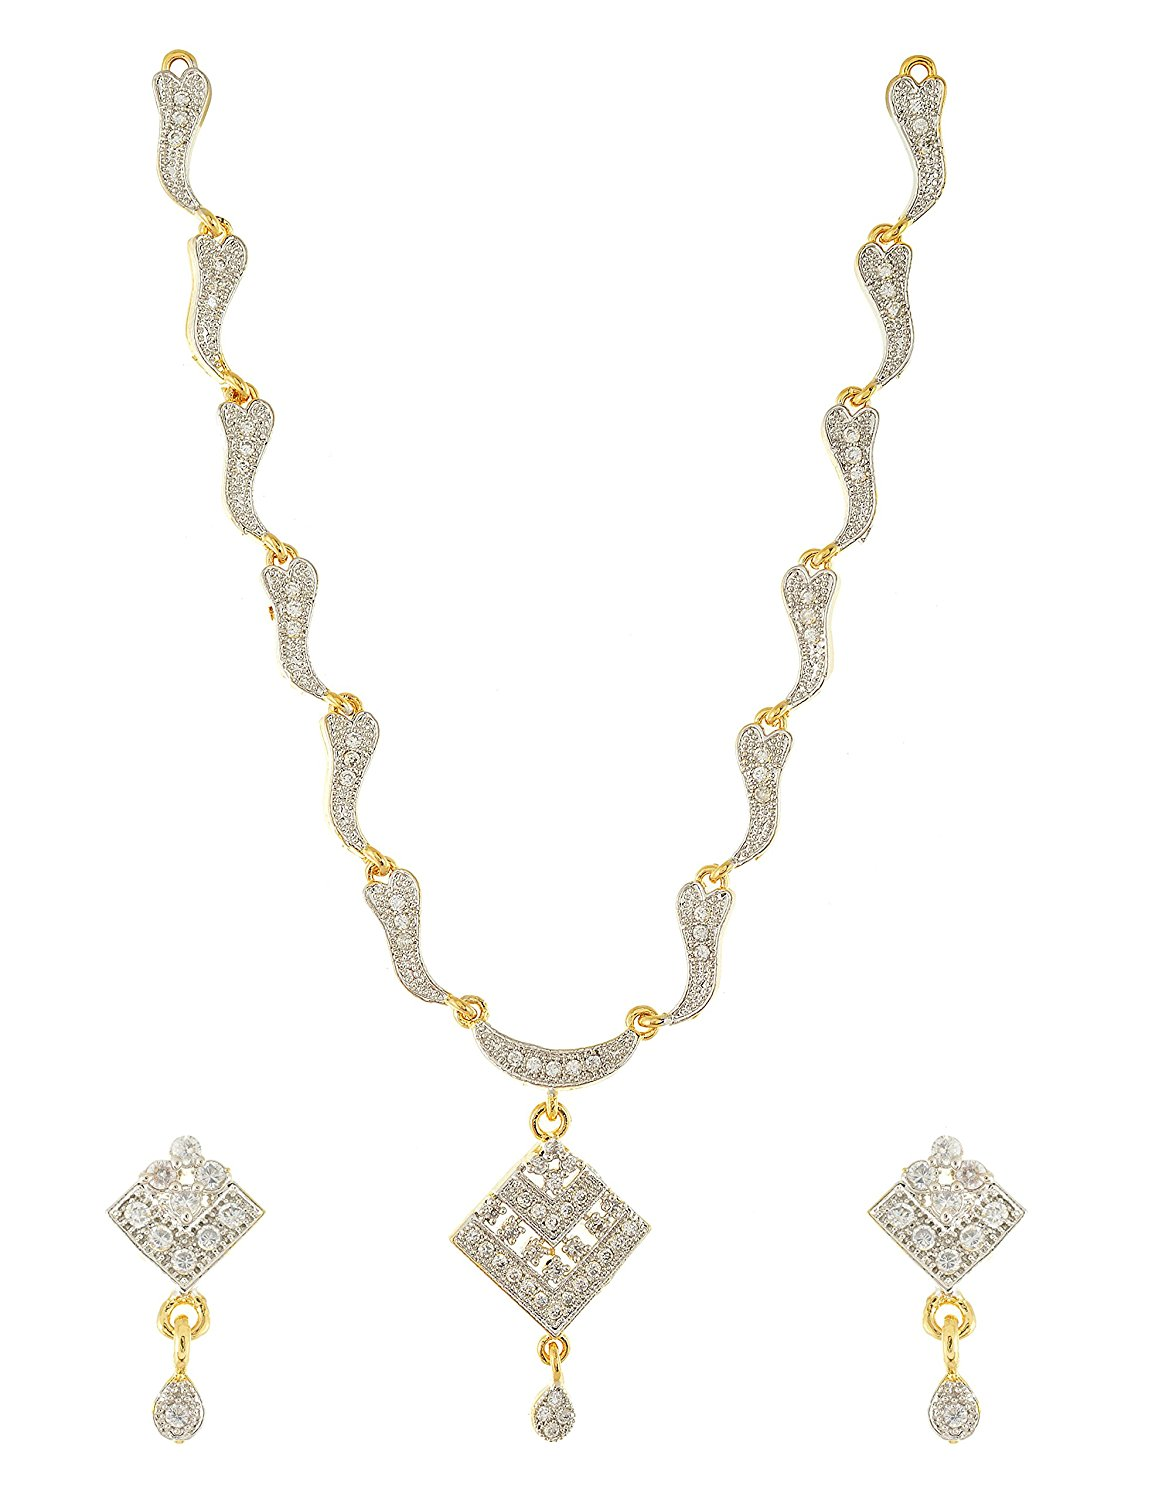 Handicraft Kottage Women's Gold and Silver Gold Plated Strand Necklace Set (HK-Neck-022)